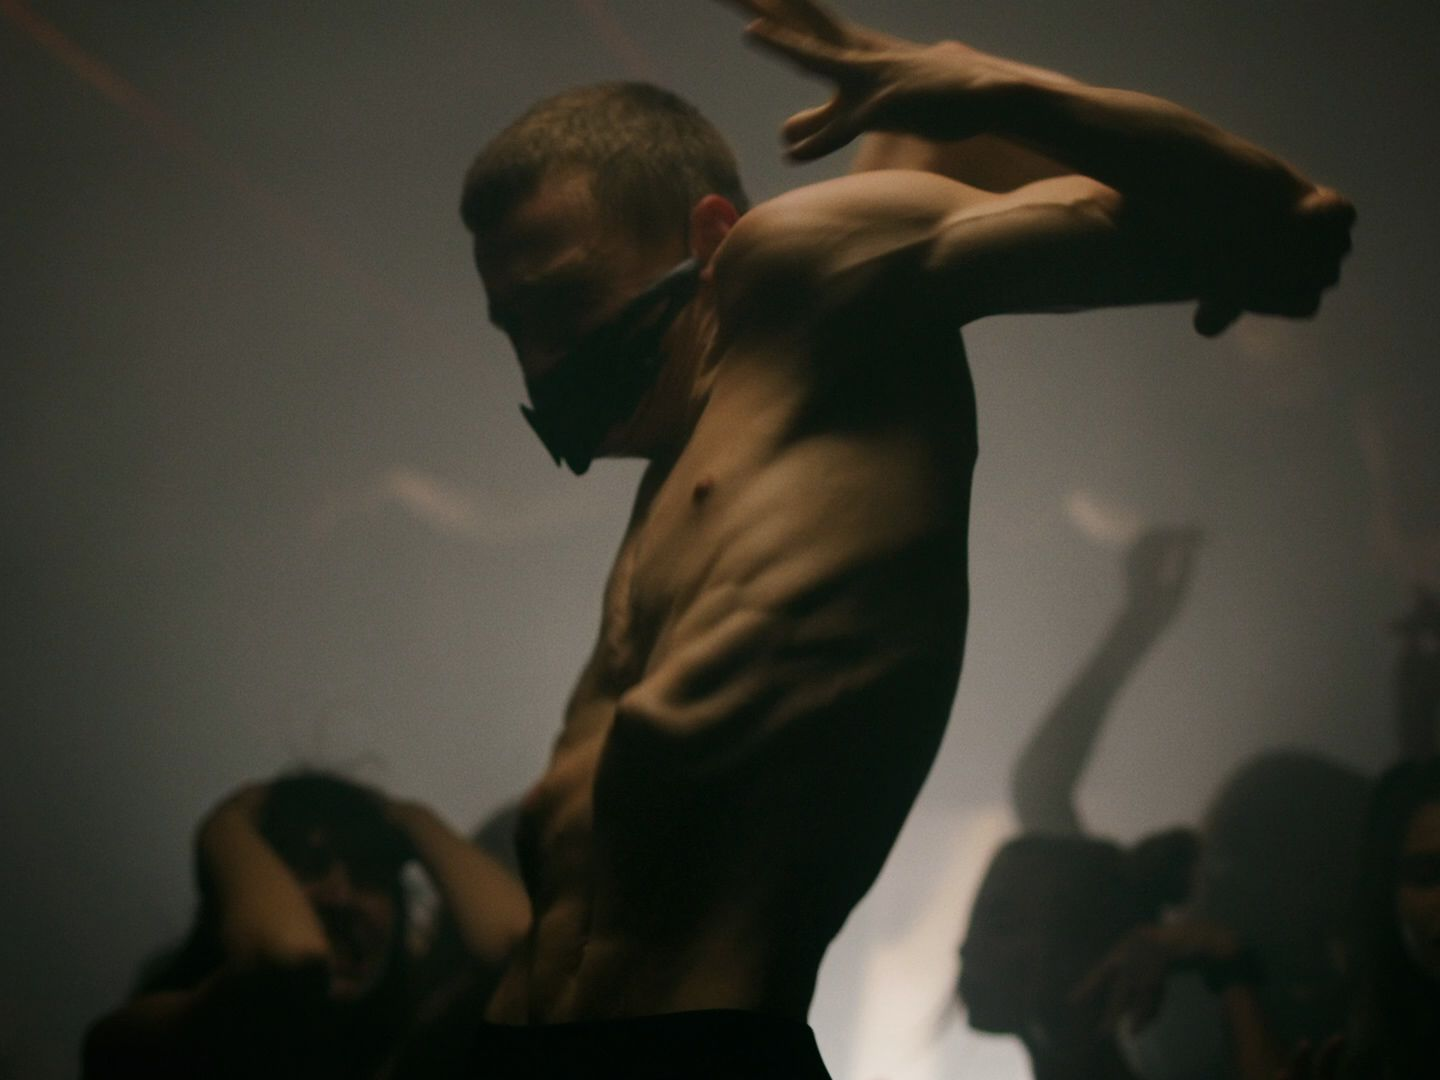 Contortionist dancing in a crowd in Apashe's videoclip Witch